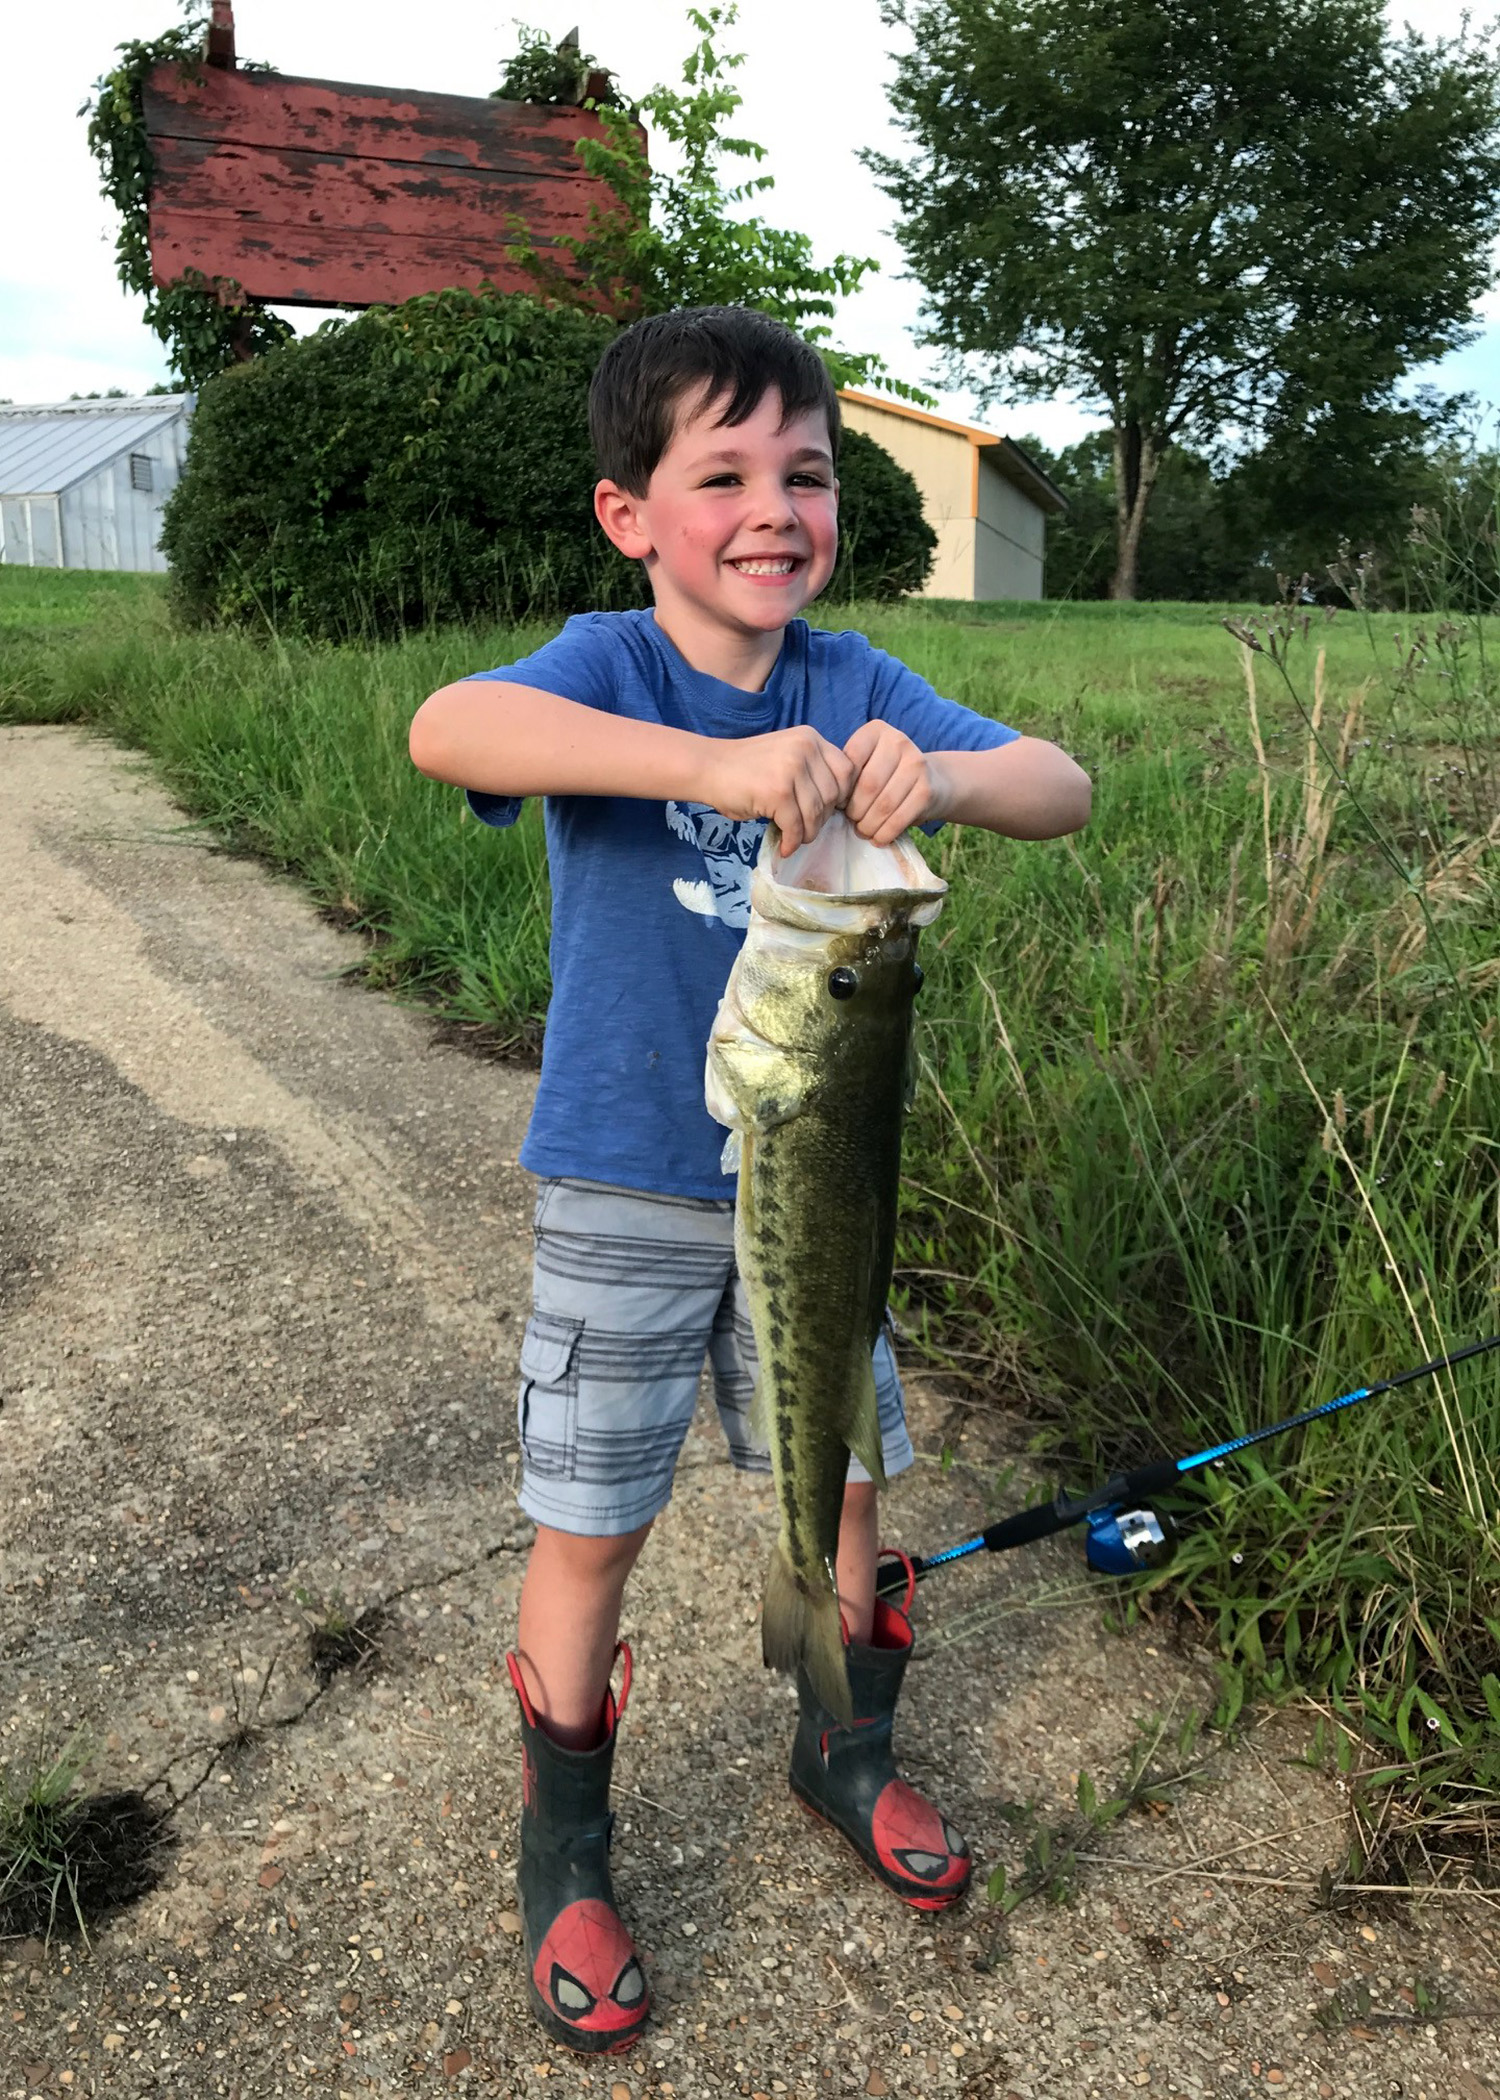 Consider Many Reasons To Teach A Child To Fish